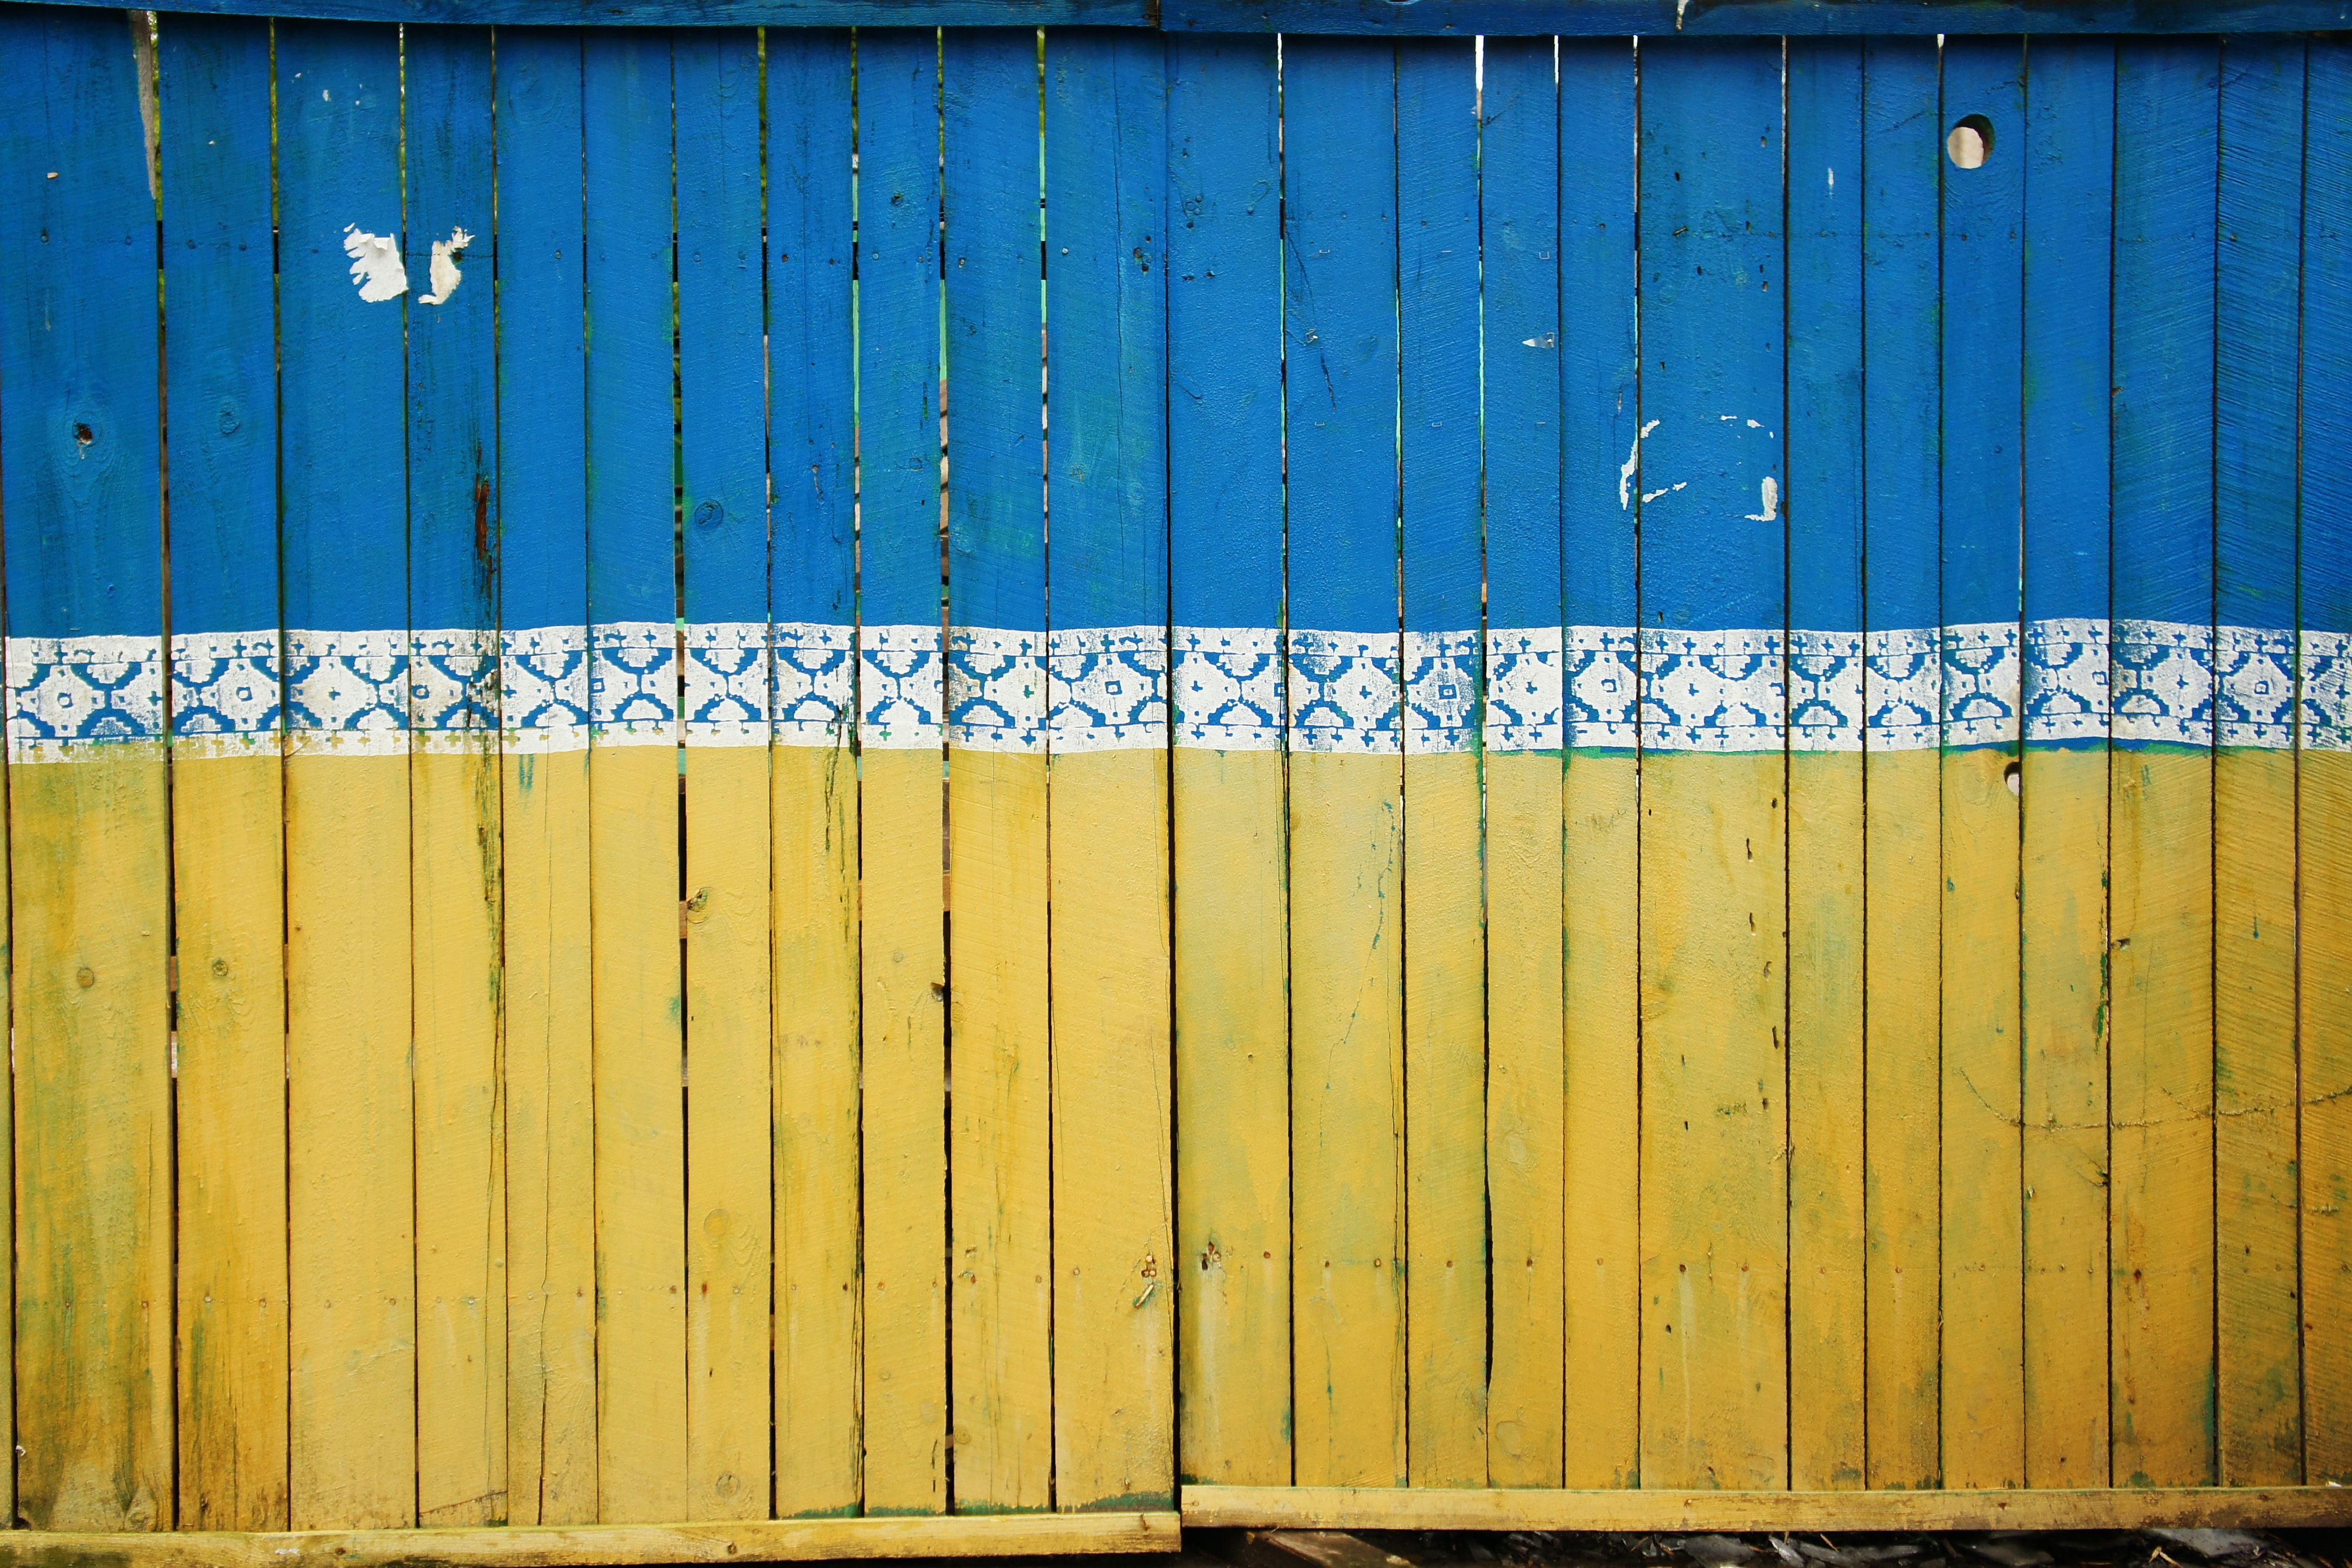 A tall wooden fence painted blue and yellow with a white folk pattern in the middle